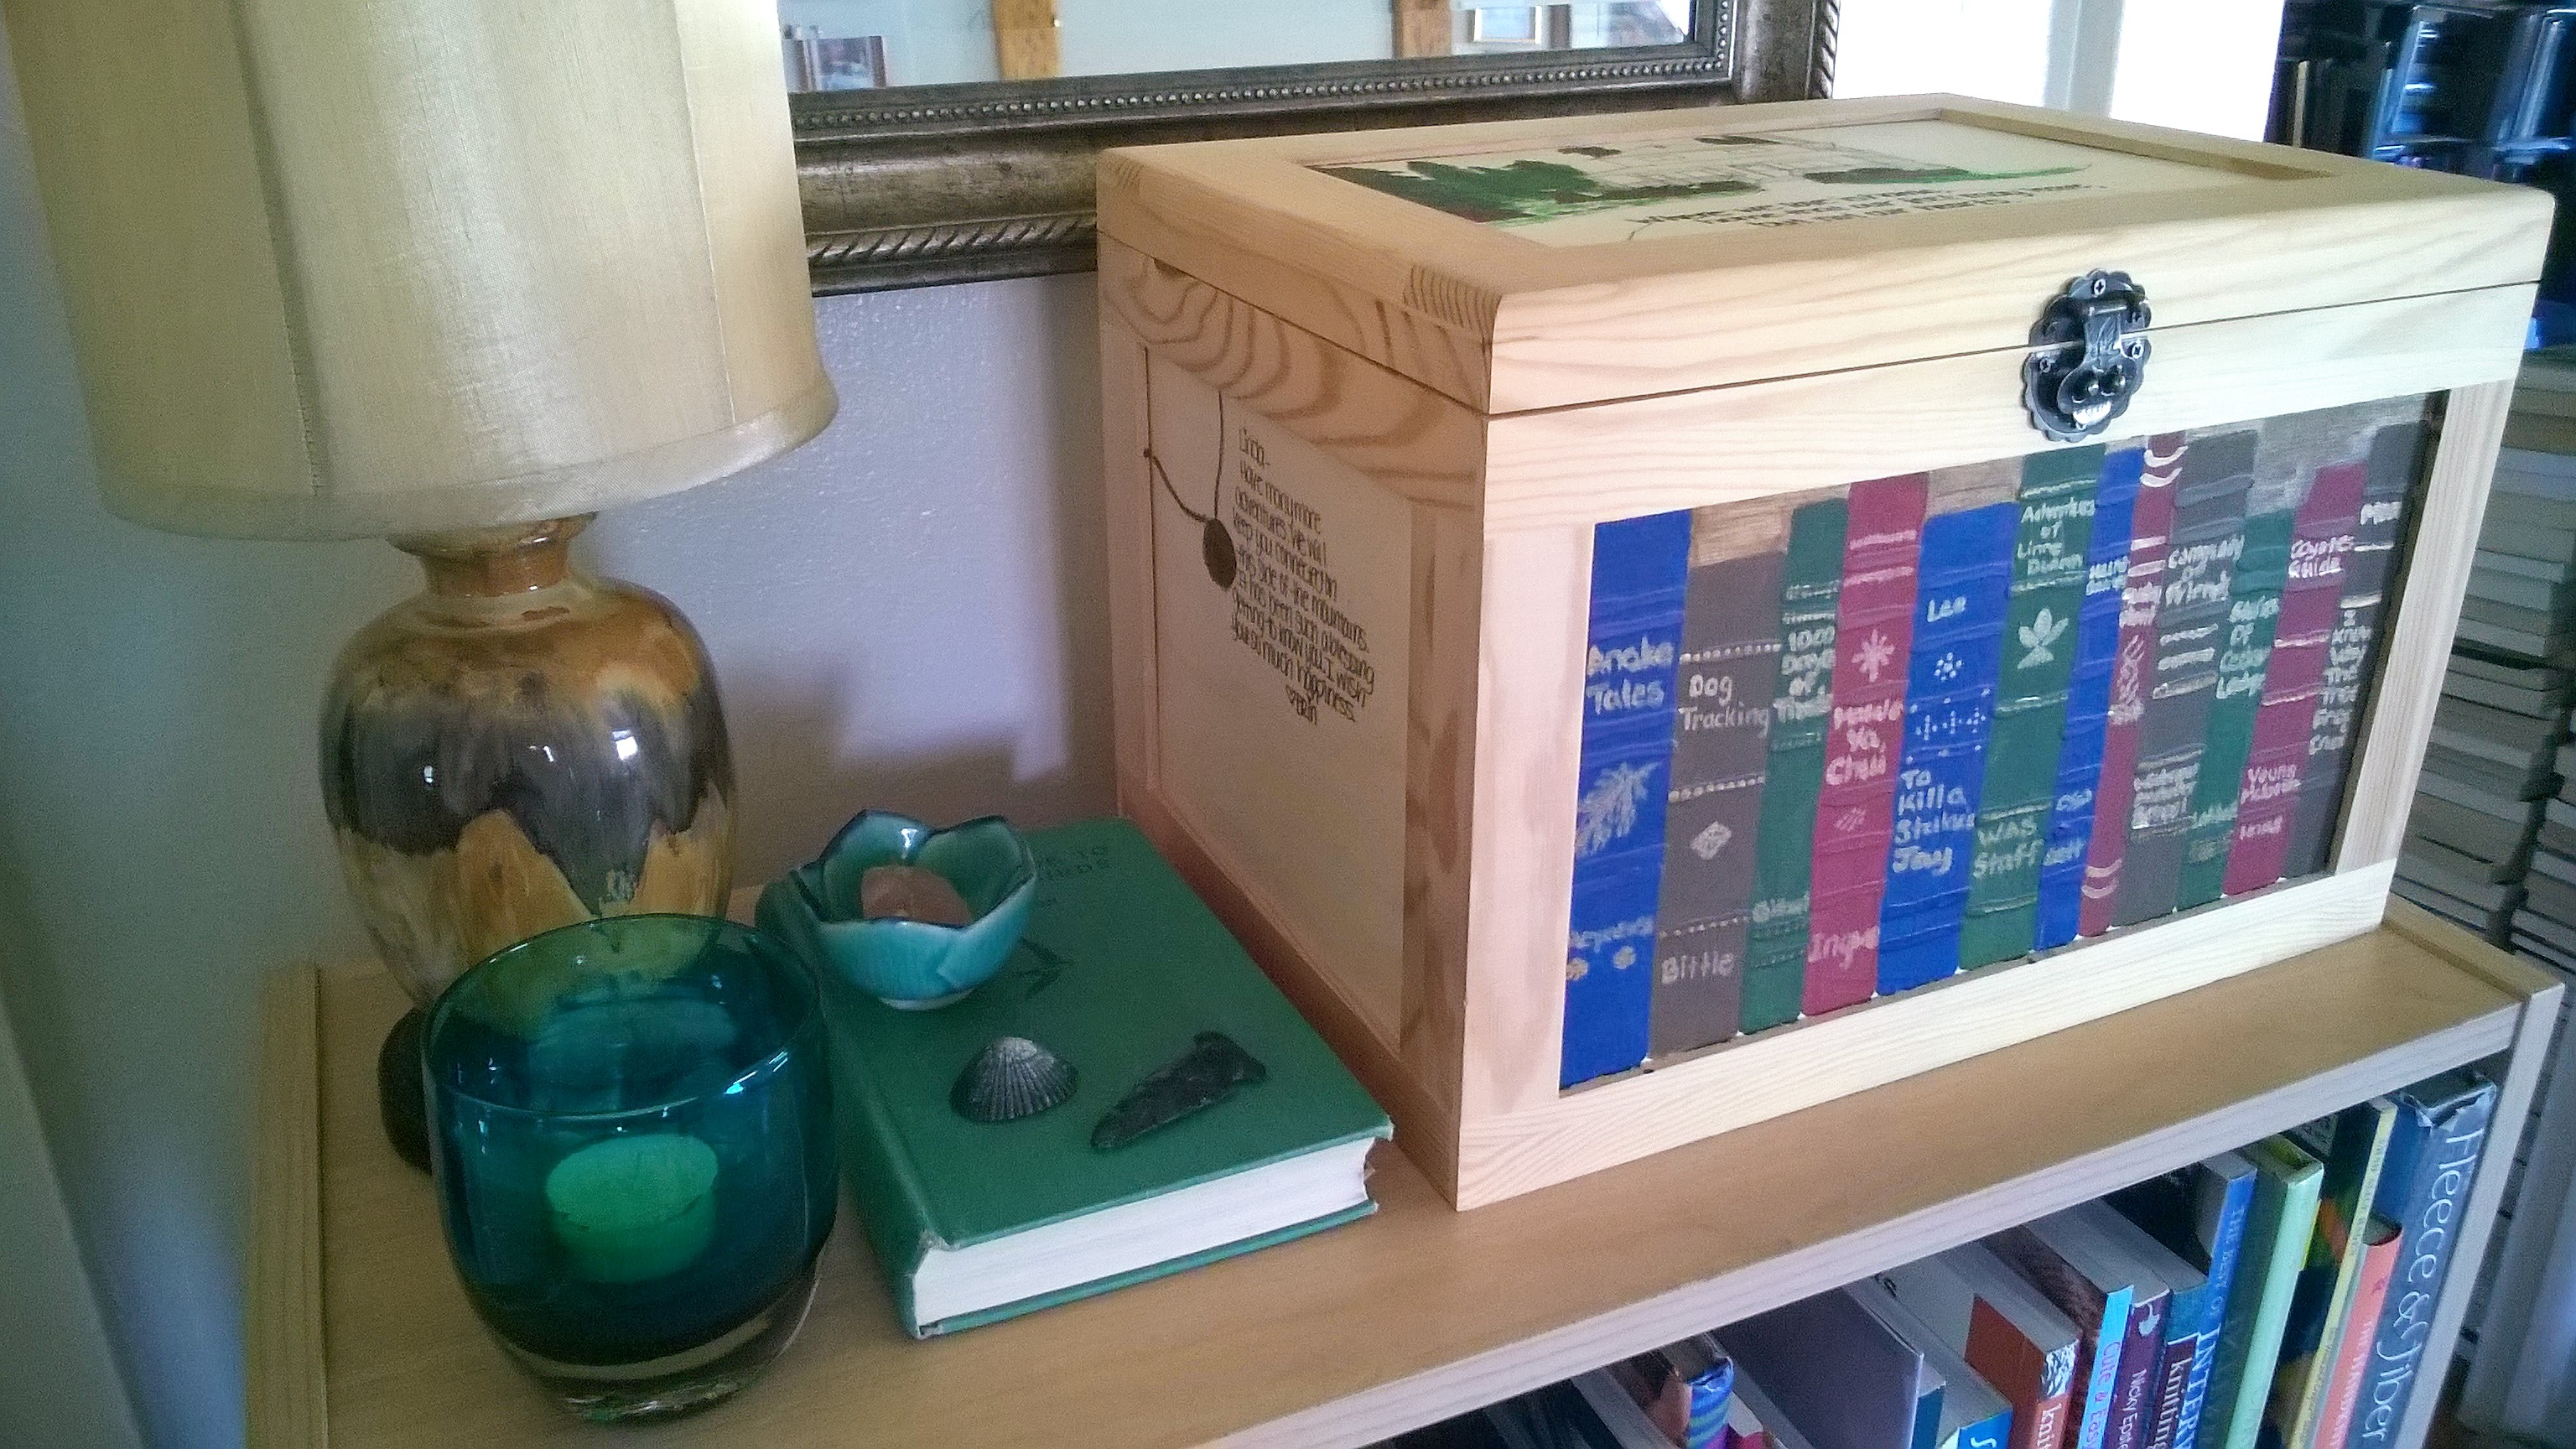 Even the wooden box on the shelf had books painted on the front! Sill life with lamp, candles, and trinkets.